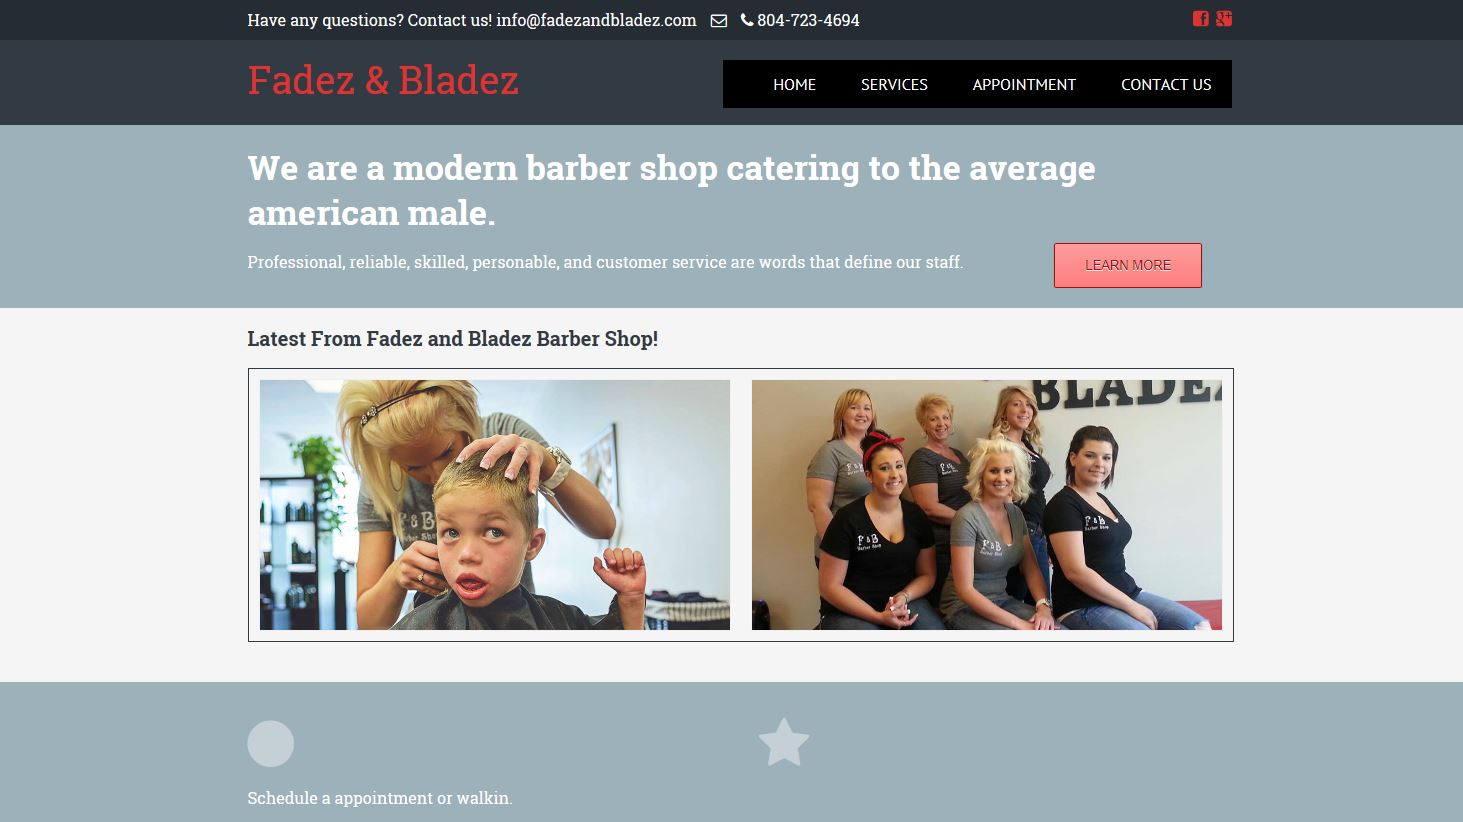 Fadez and Bladez Barber Shop